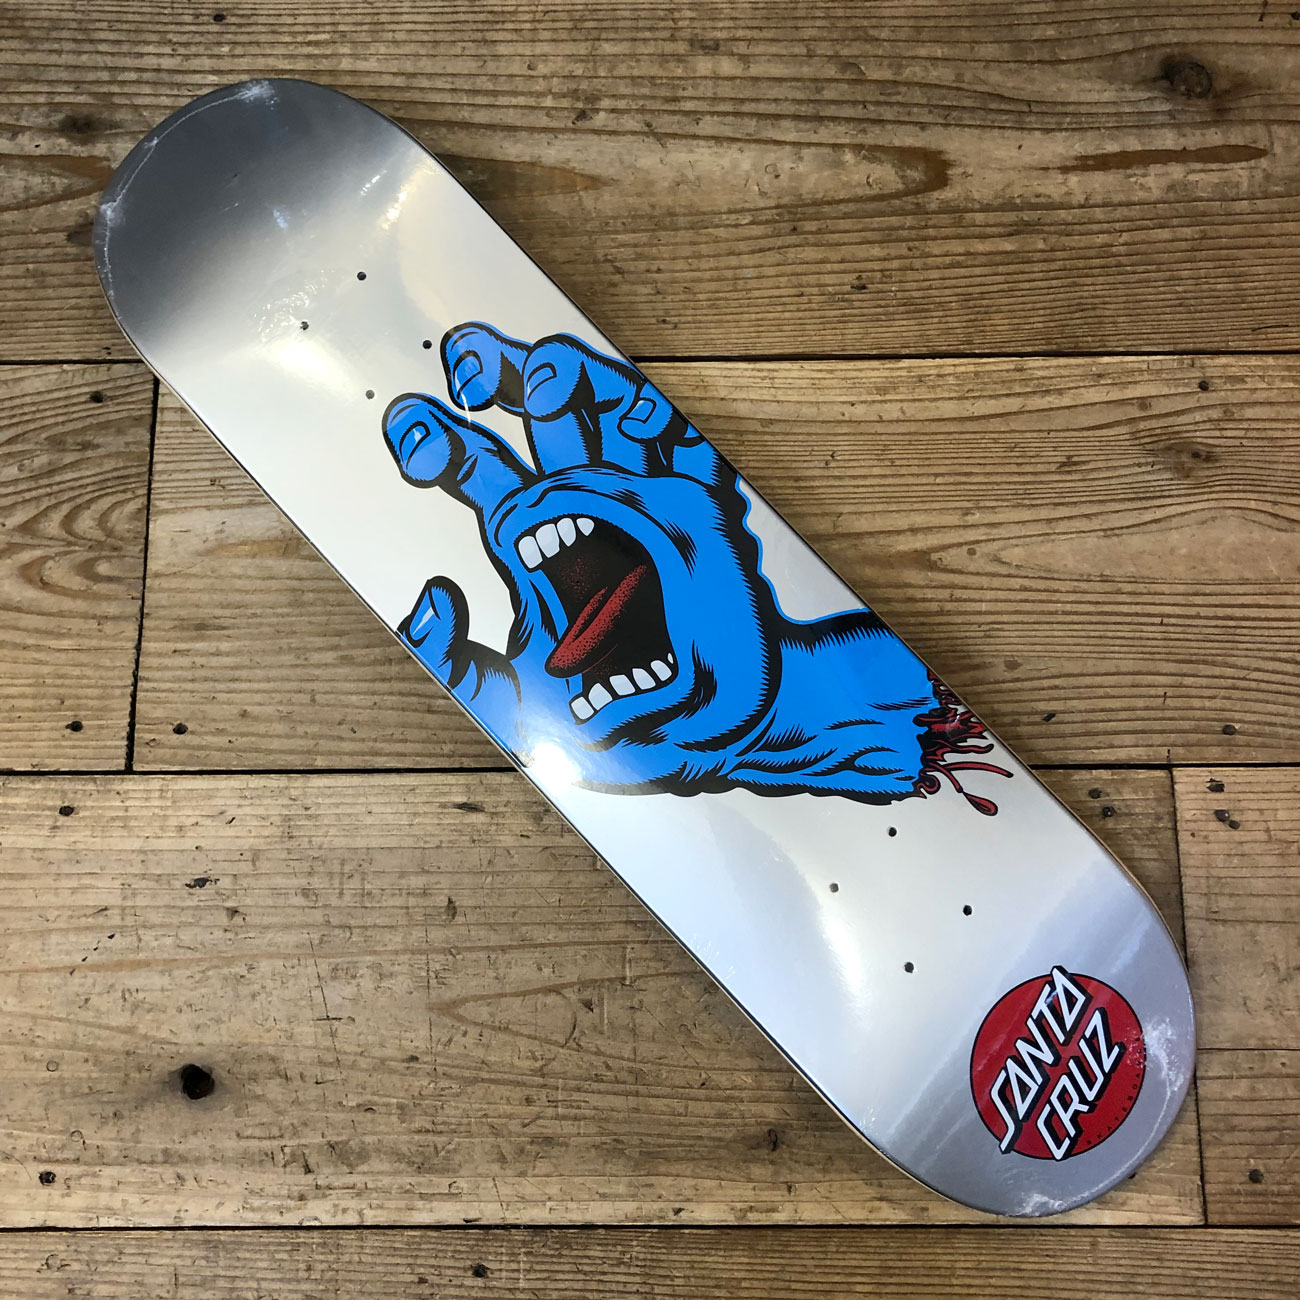 SANTA CRUZ SCREAMING HAND DECK BLUE SILVER 7.75inch